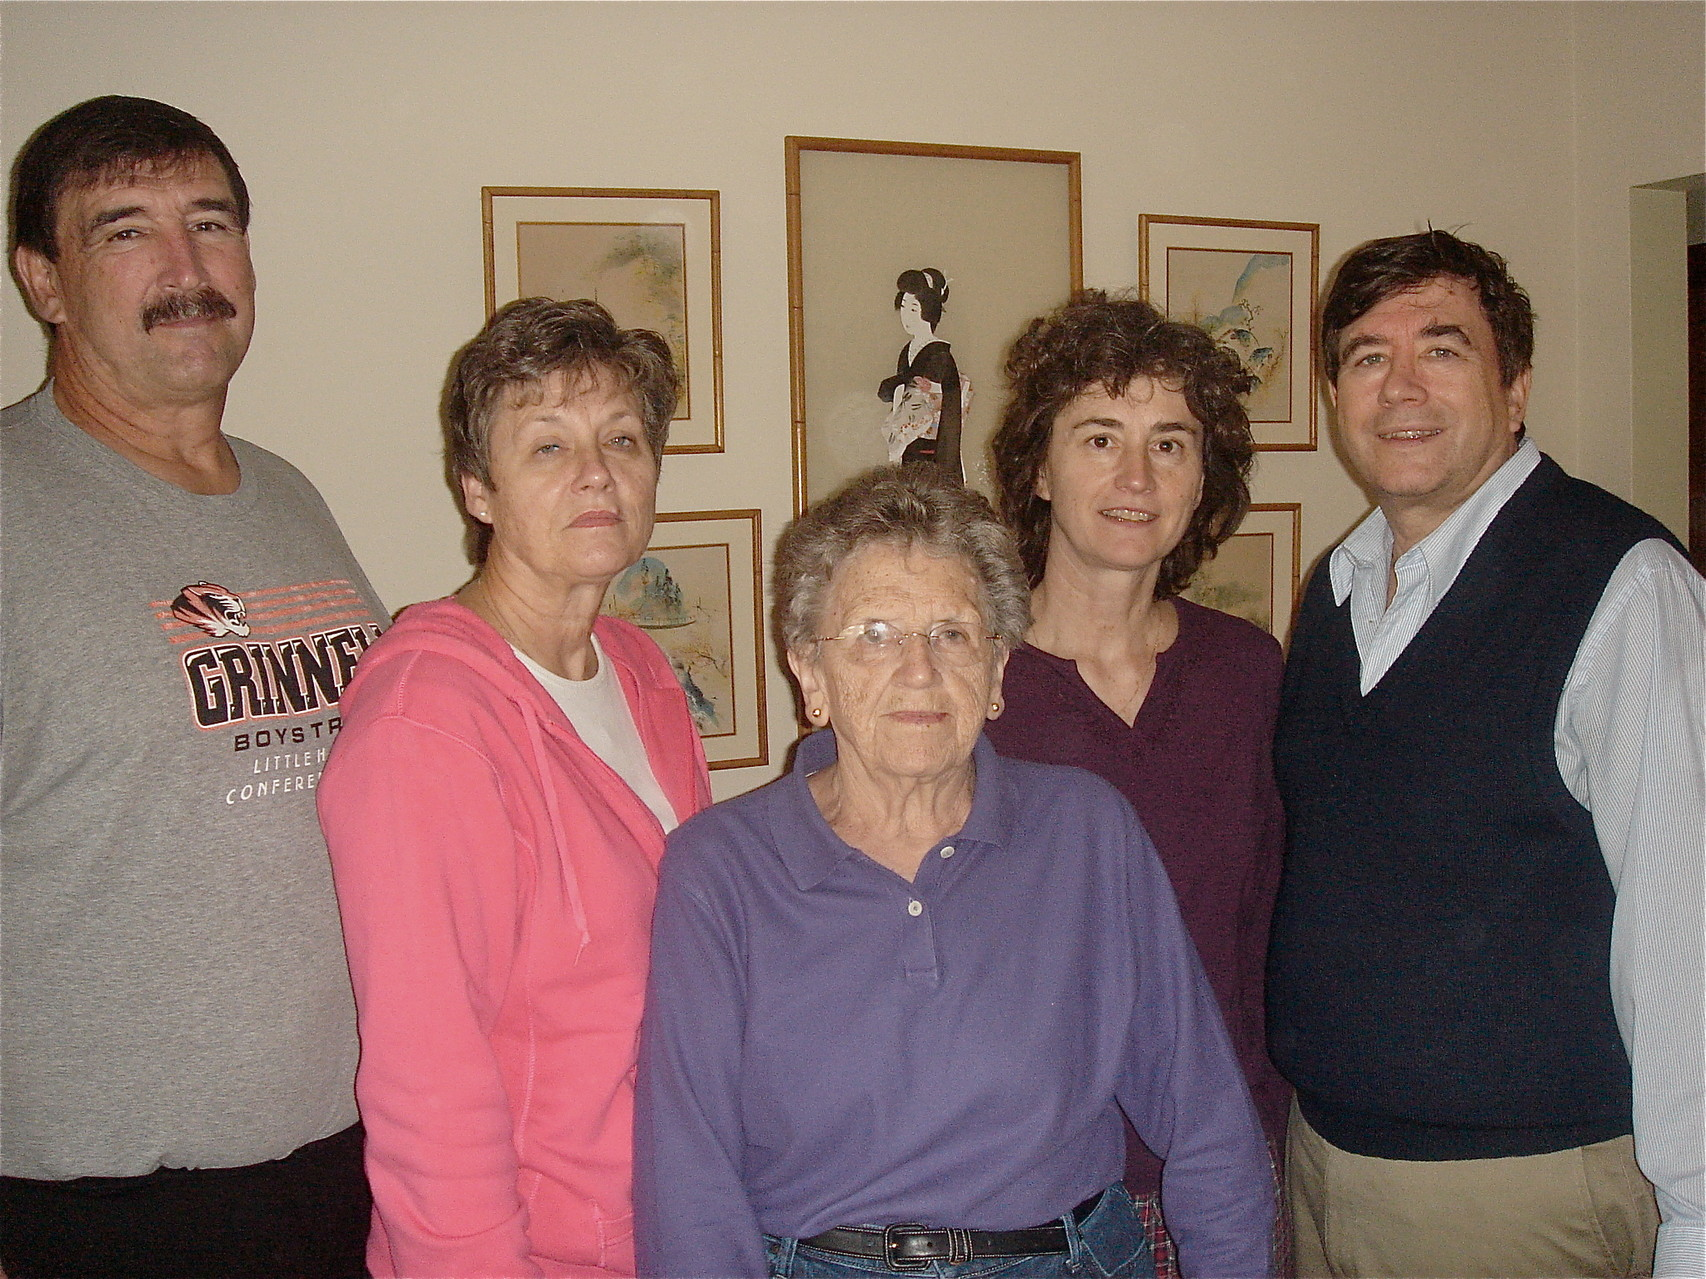 Paul, Cindy, Mary Lou, Ann, John, Xmas 2008